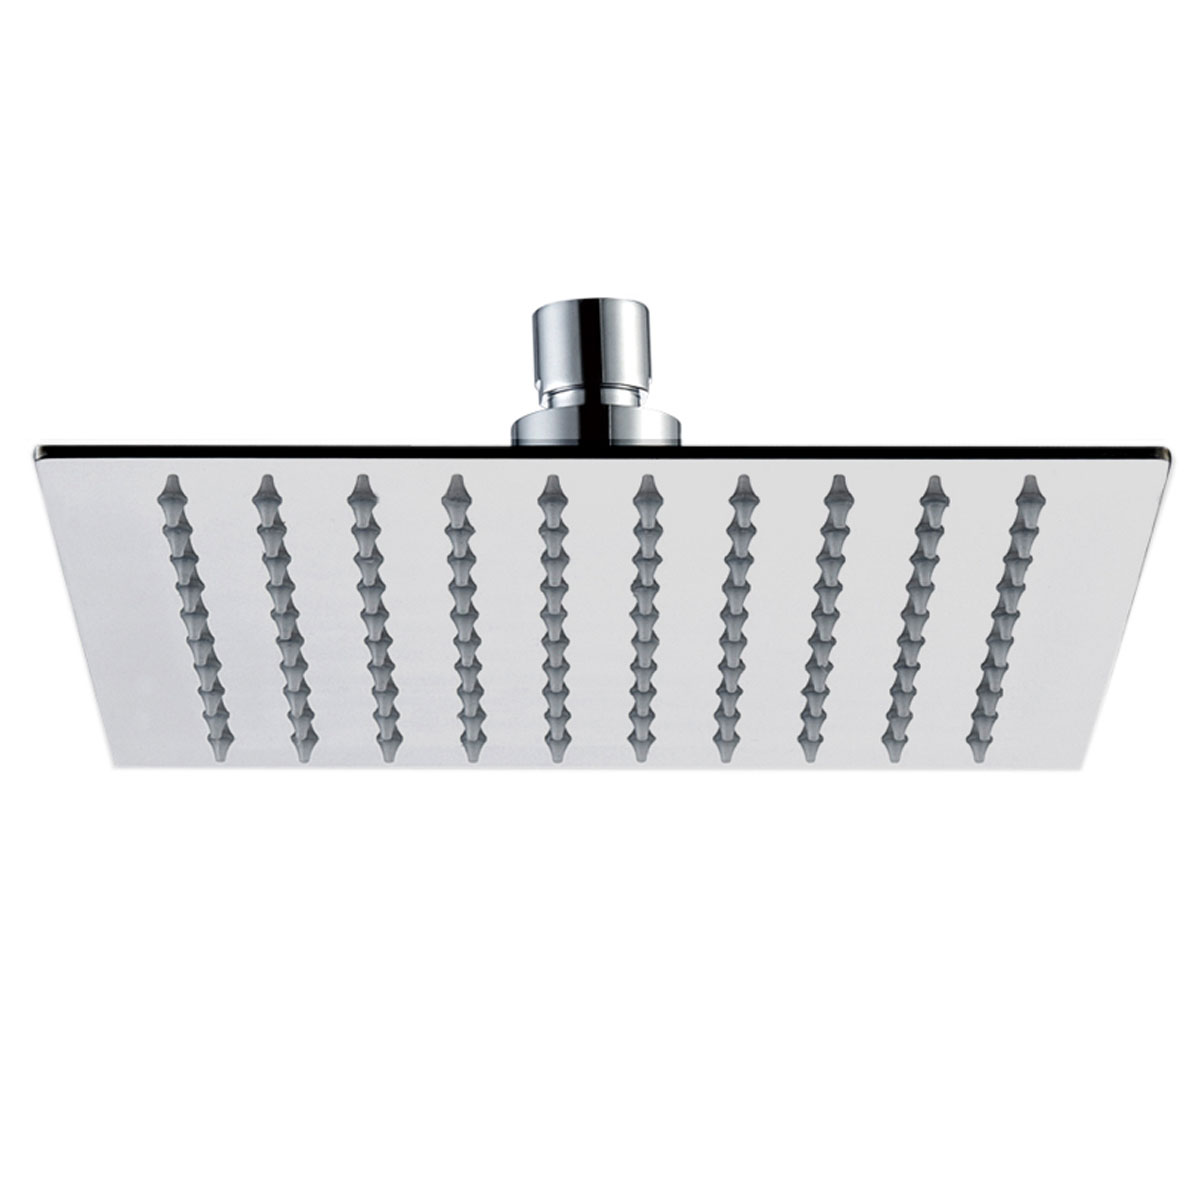 JTP Inox Square Fixed Shower Head 200mm x 200mm - Stainless Steel